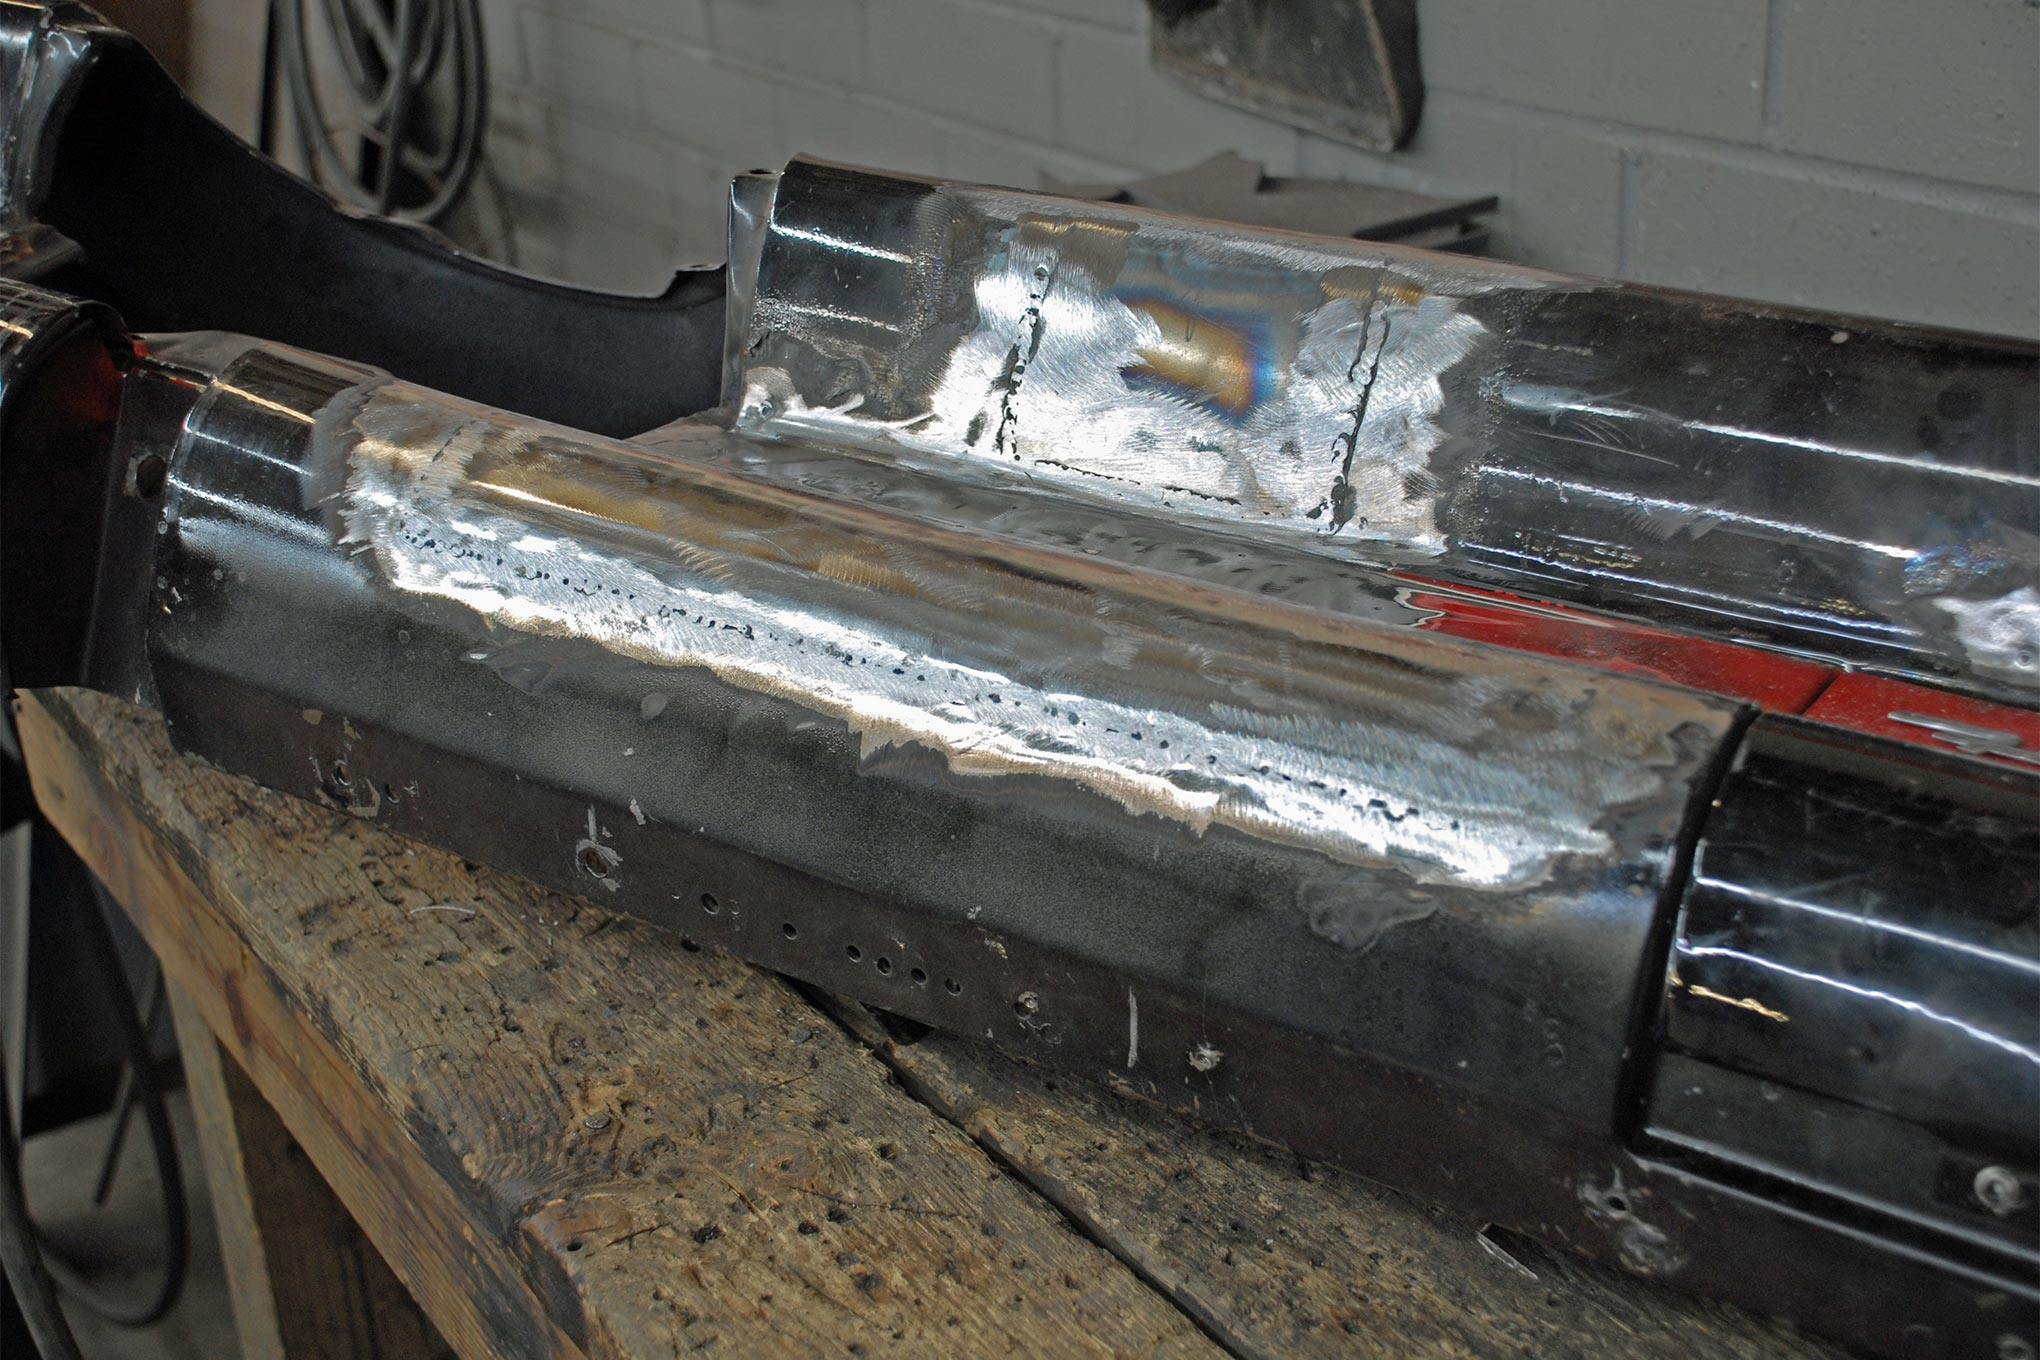 After the welding is complete some careful work with the grinder dresses the welds in preparation for final bodywork. The entire dash will be bead blasted prior to painting.